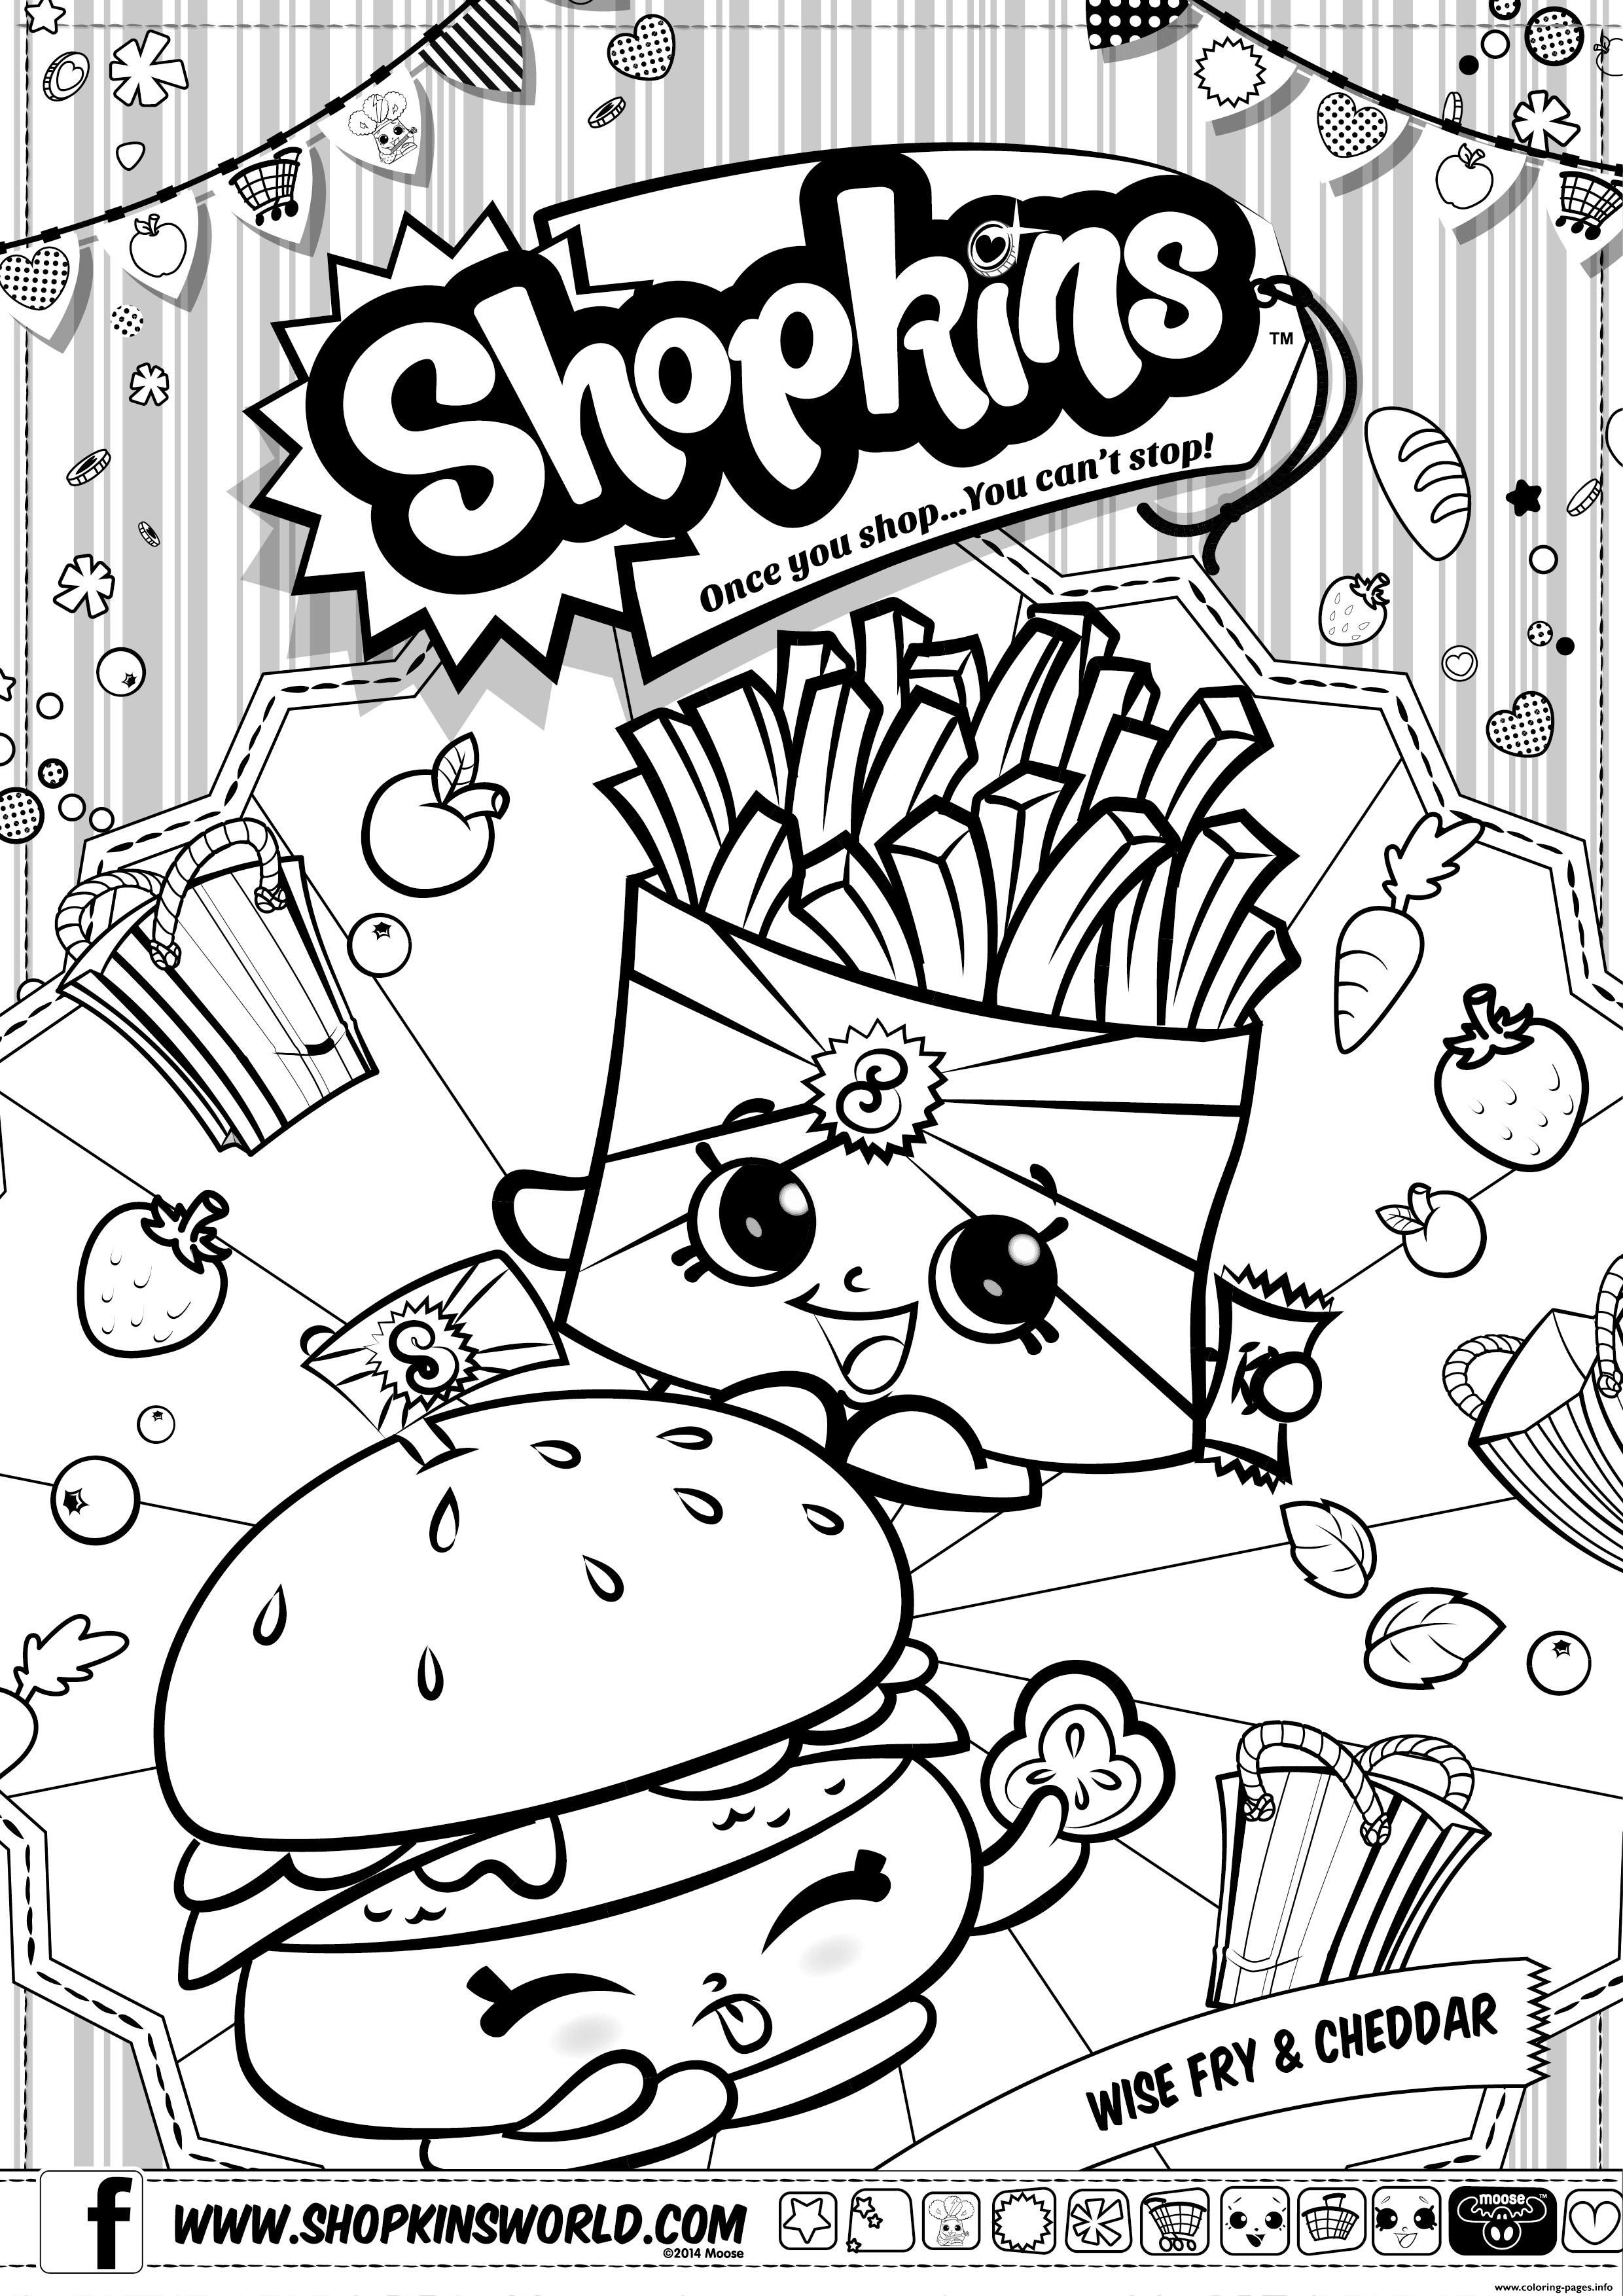 Unusual Harry Potter Coloring Book Big True Colors Book Clean Marvel Coloring Books Cars Coloring Book Youthful Marvel Coloring Book BlueMosaic Coloring Books Print Shopkins Wise Fry Cheddar Coloring Pages | Shopkins ..